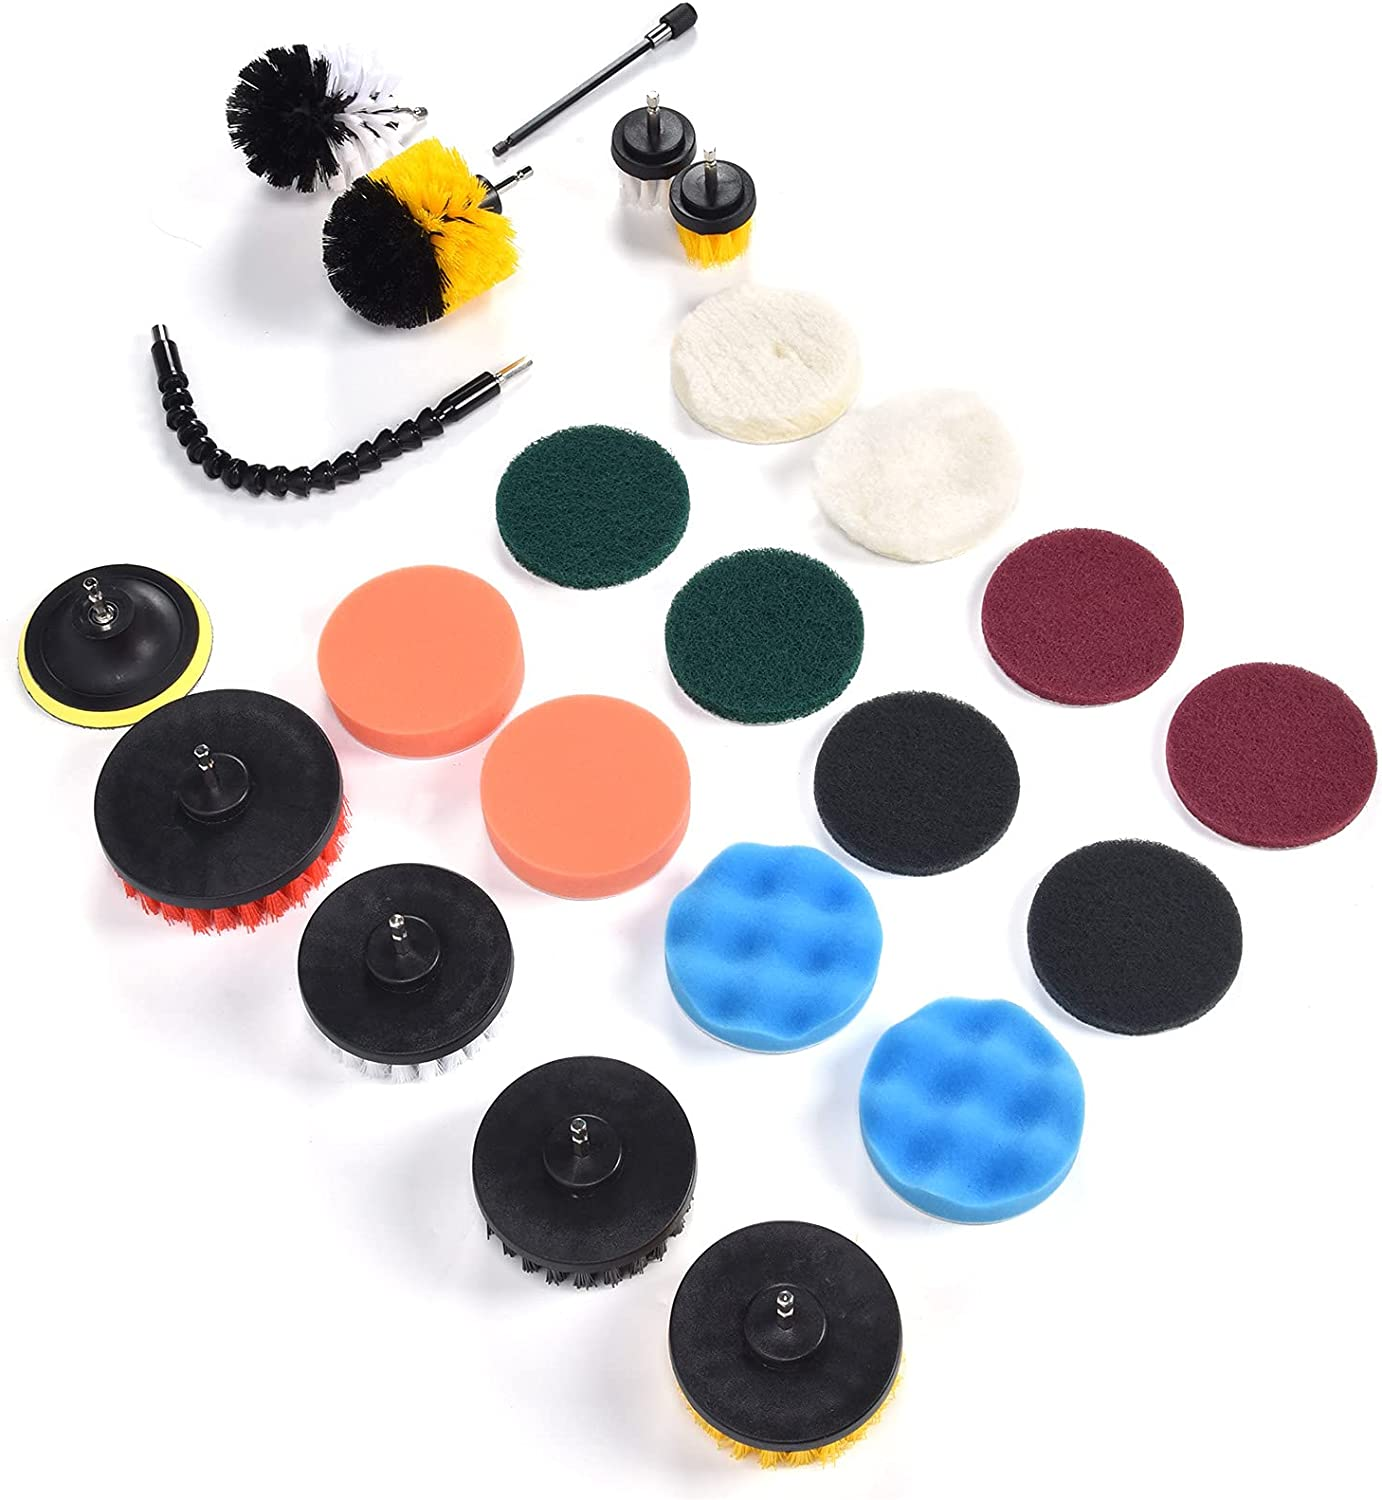 Cleaning Raleigh Mall Brush Very popular Set Get Faster Scrub Jobs 23PCS D